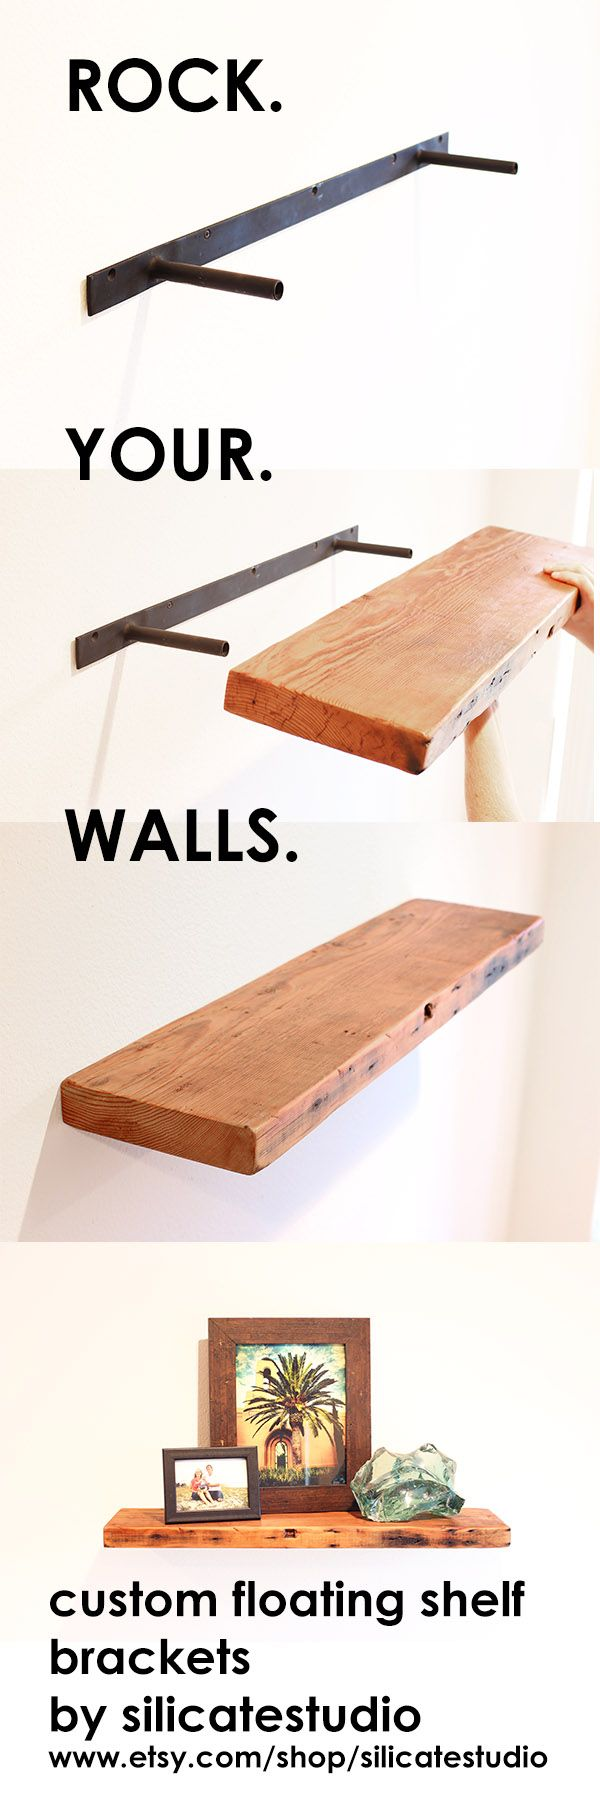 make any slab wood floating shelf with tough and invisible timber brackets custom bracket from silicate studio works especially well reclaimed wall shelves diy stackable shoe